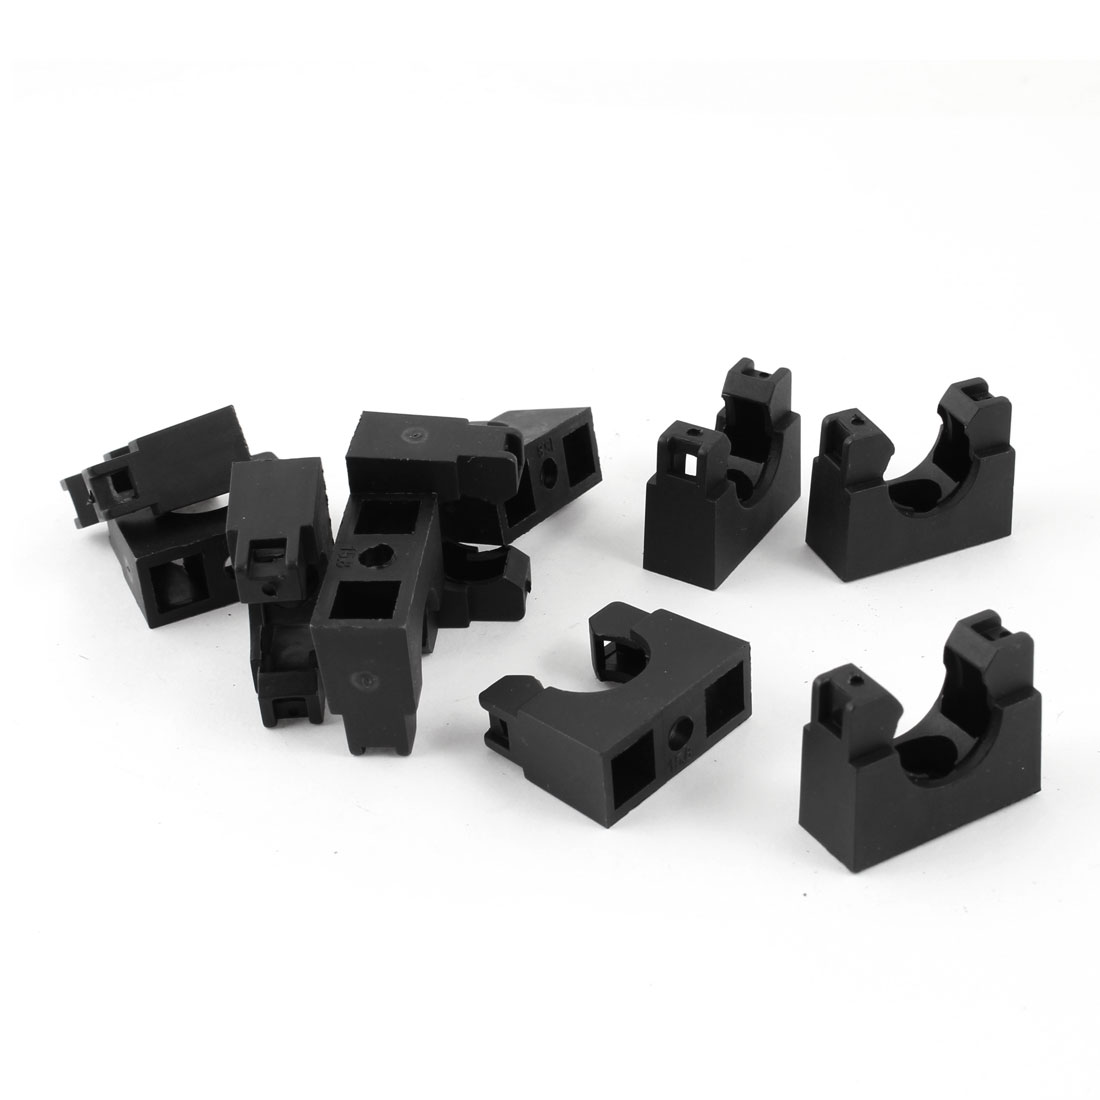 AD15.8 Flexible Pipe Conduit Plastic Mounting Stand Bracket 10pcs